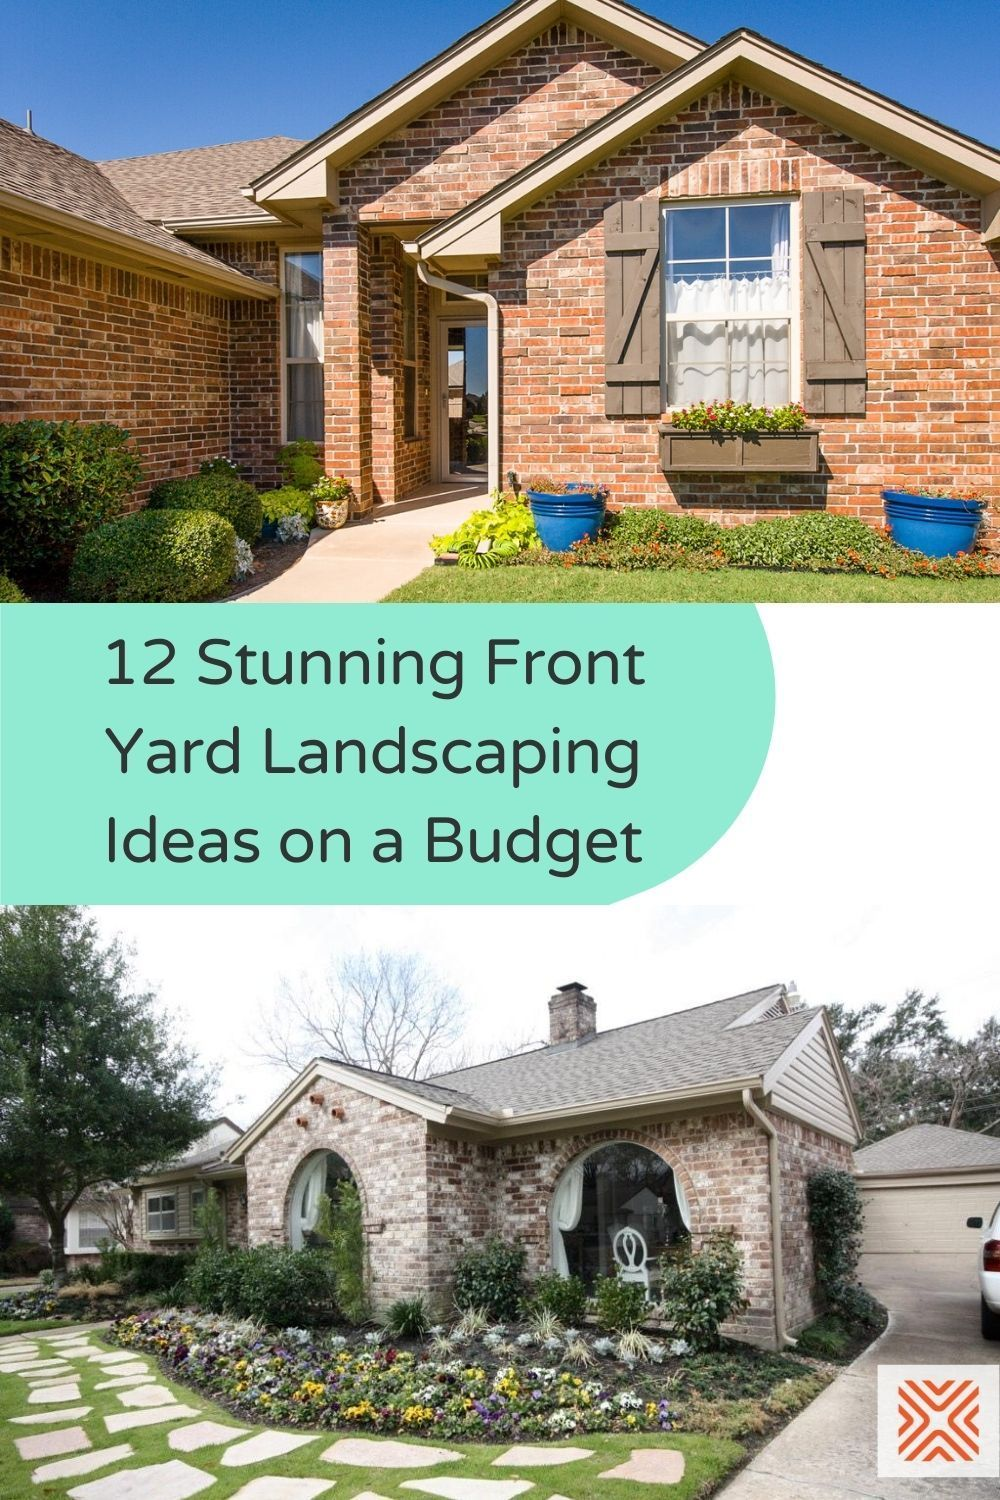 Taking care of your front yard is always a good thing. Not only does it increase the curb appeal of your home, but it also adds value to your property. Renovate your front yard with these 12 stunning front yard landscaping ideas on a budget.